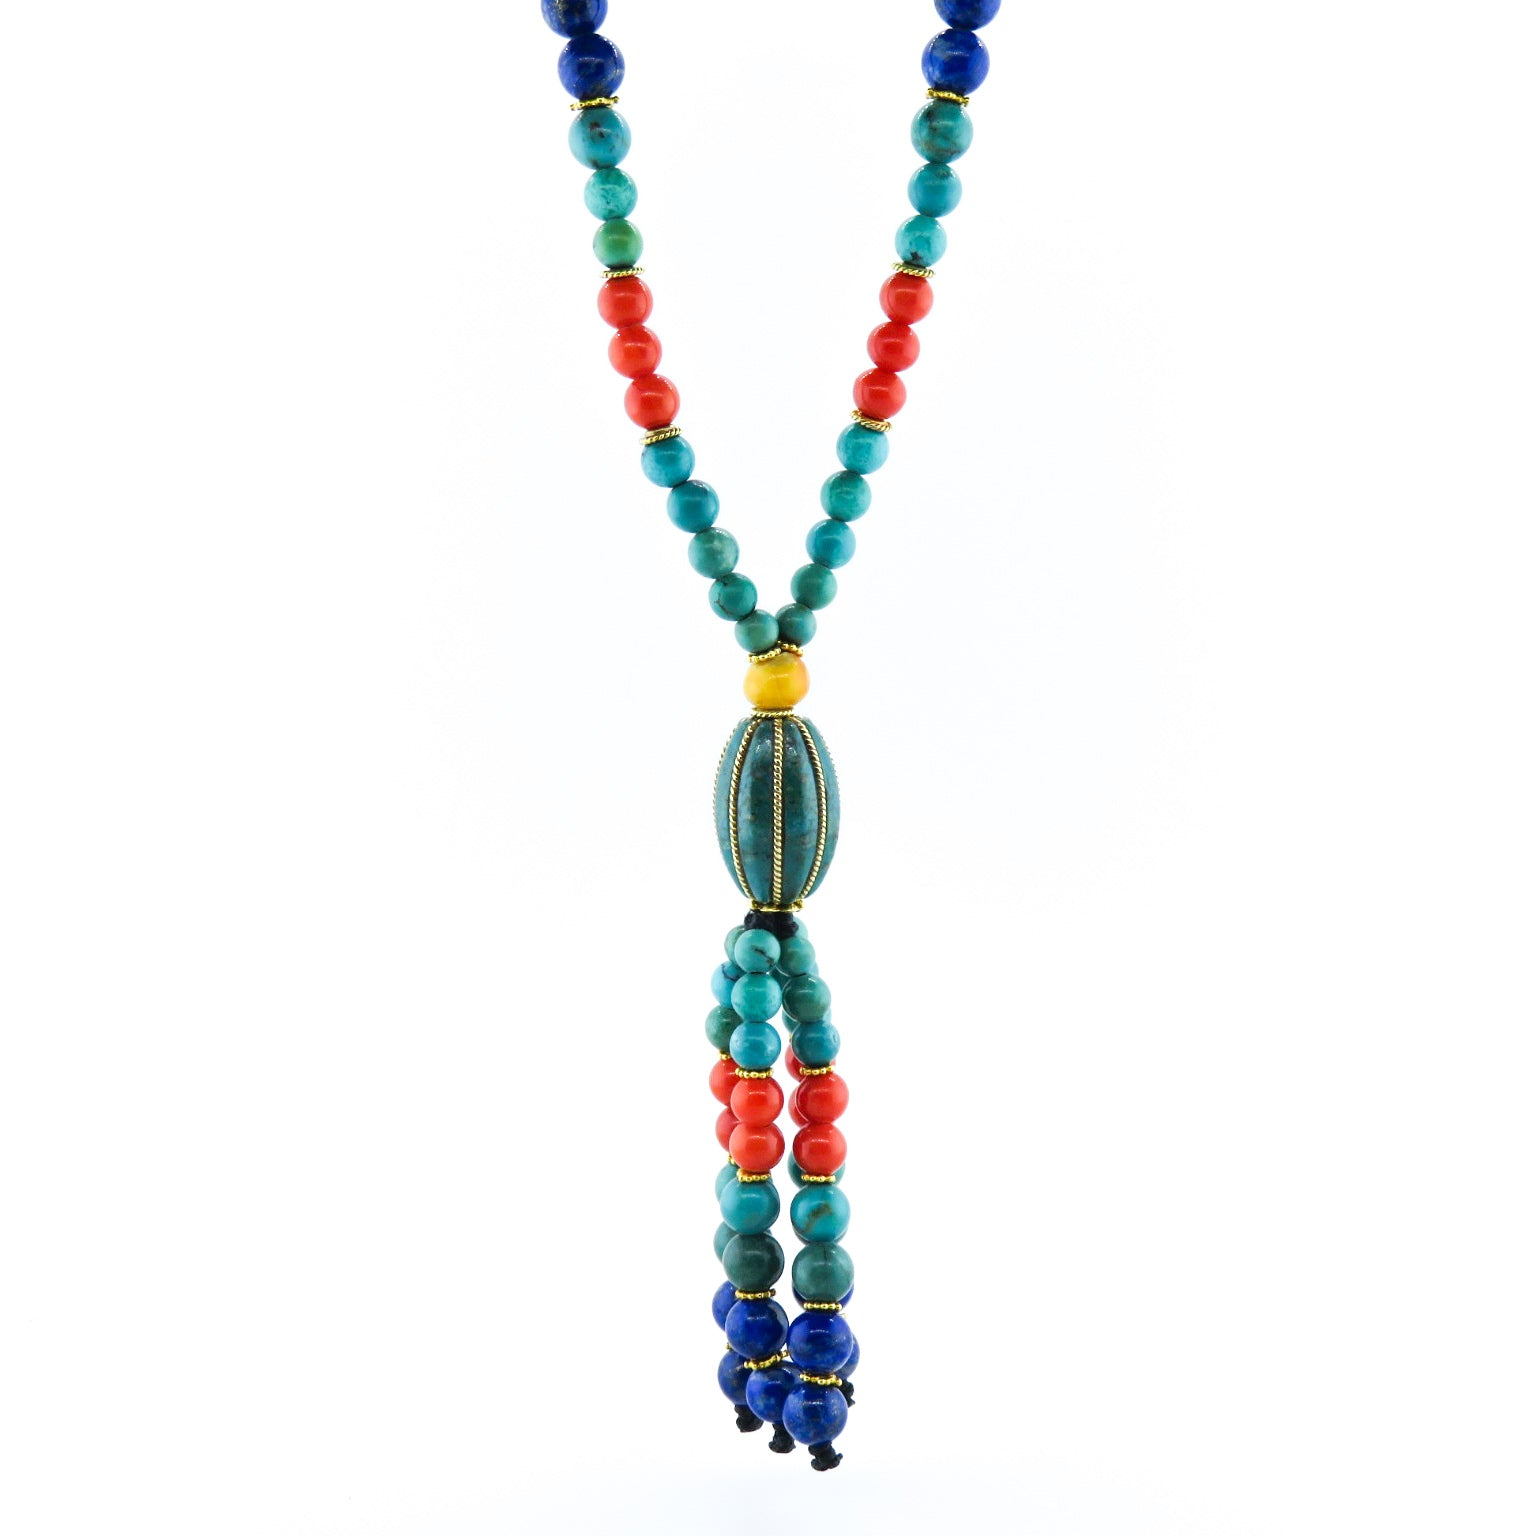 Turquoise Necklace with Red Coral, Lapis Lazuli, Amber and 18k Gold